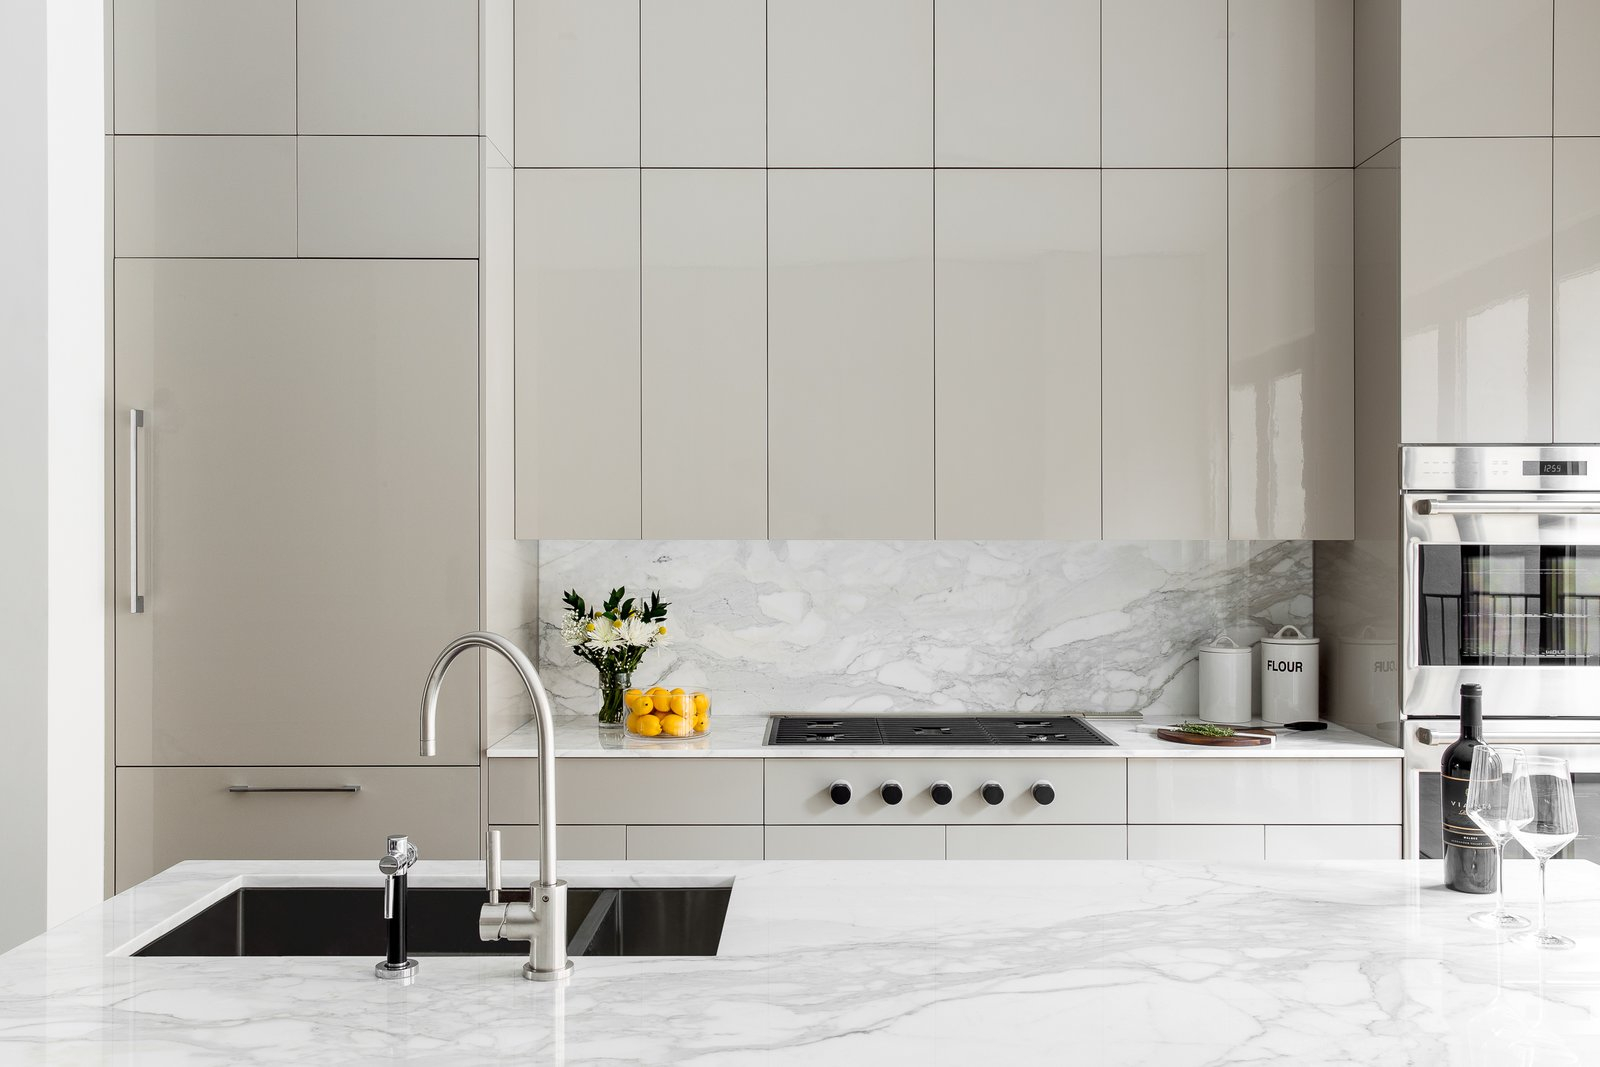 Kitchen, Medium Hardwood, Colorful, Refrigerator, Marble, Stone Slab, Cooktops, Wall Oven, Stone, and Undermount  Best Kitchen Cooktops Wall Oven Marble Stone Stone Slab Photos from Boerum Hill Brownstone